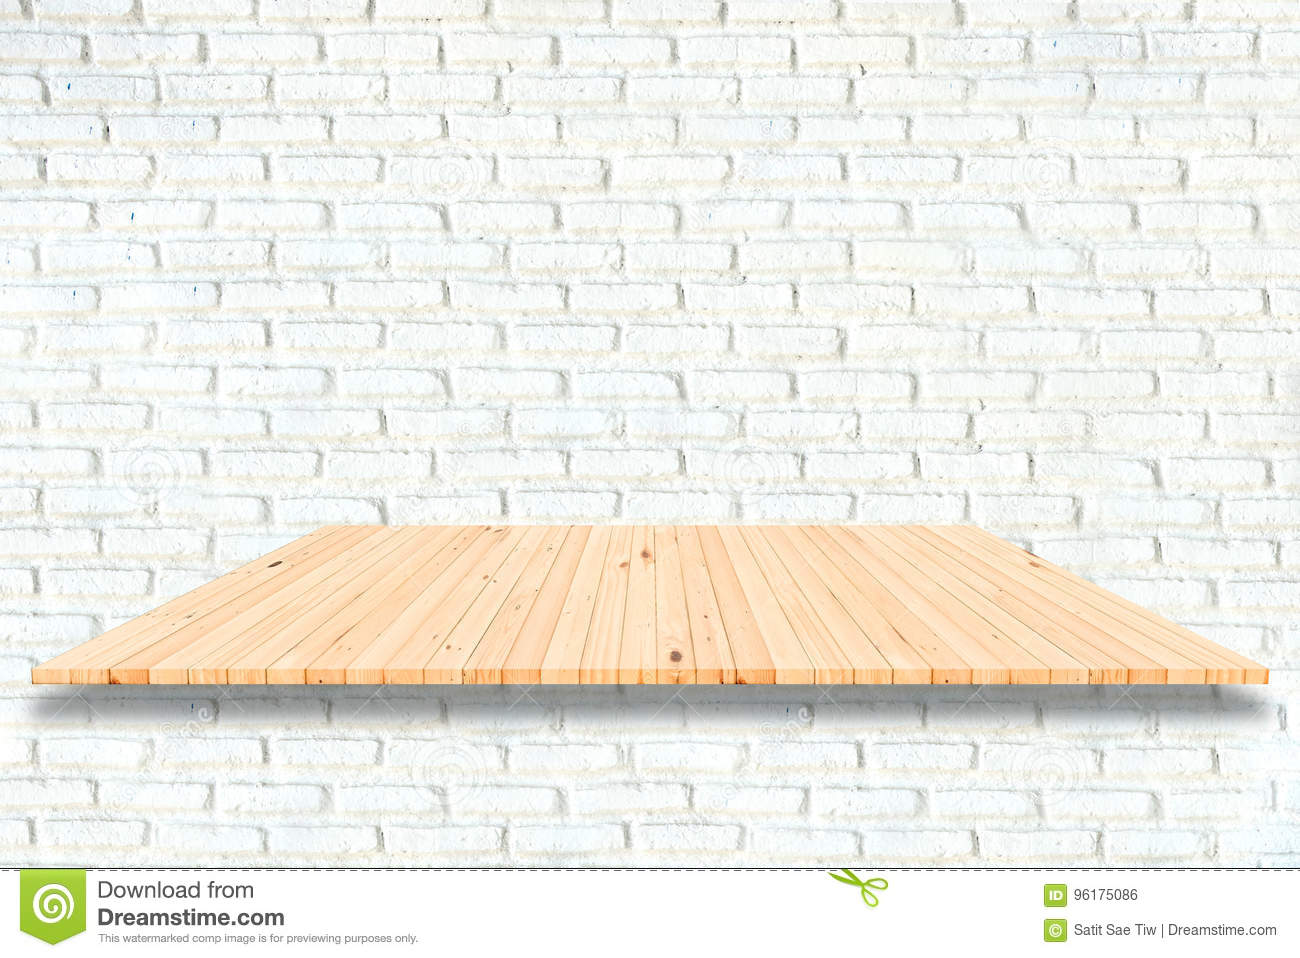 Wooden Shelves And White Brick Wall Background For Product